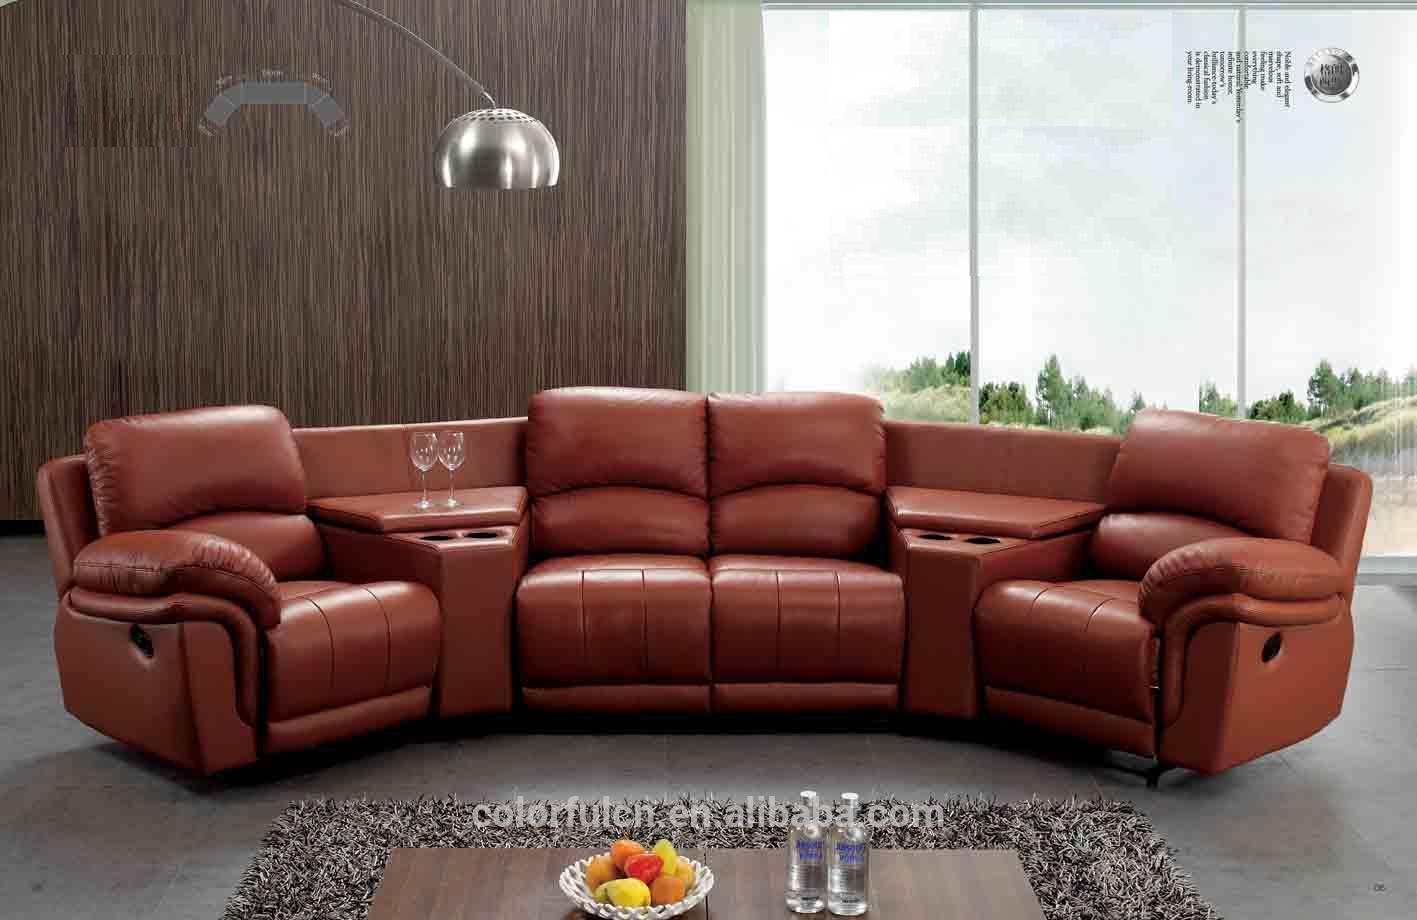 Semi Circle Leather Sofa, Semi Circle Leather Sofa Suppliers And Regarding Circle Sofas (View 14 of 20)